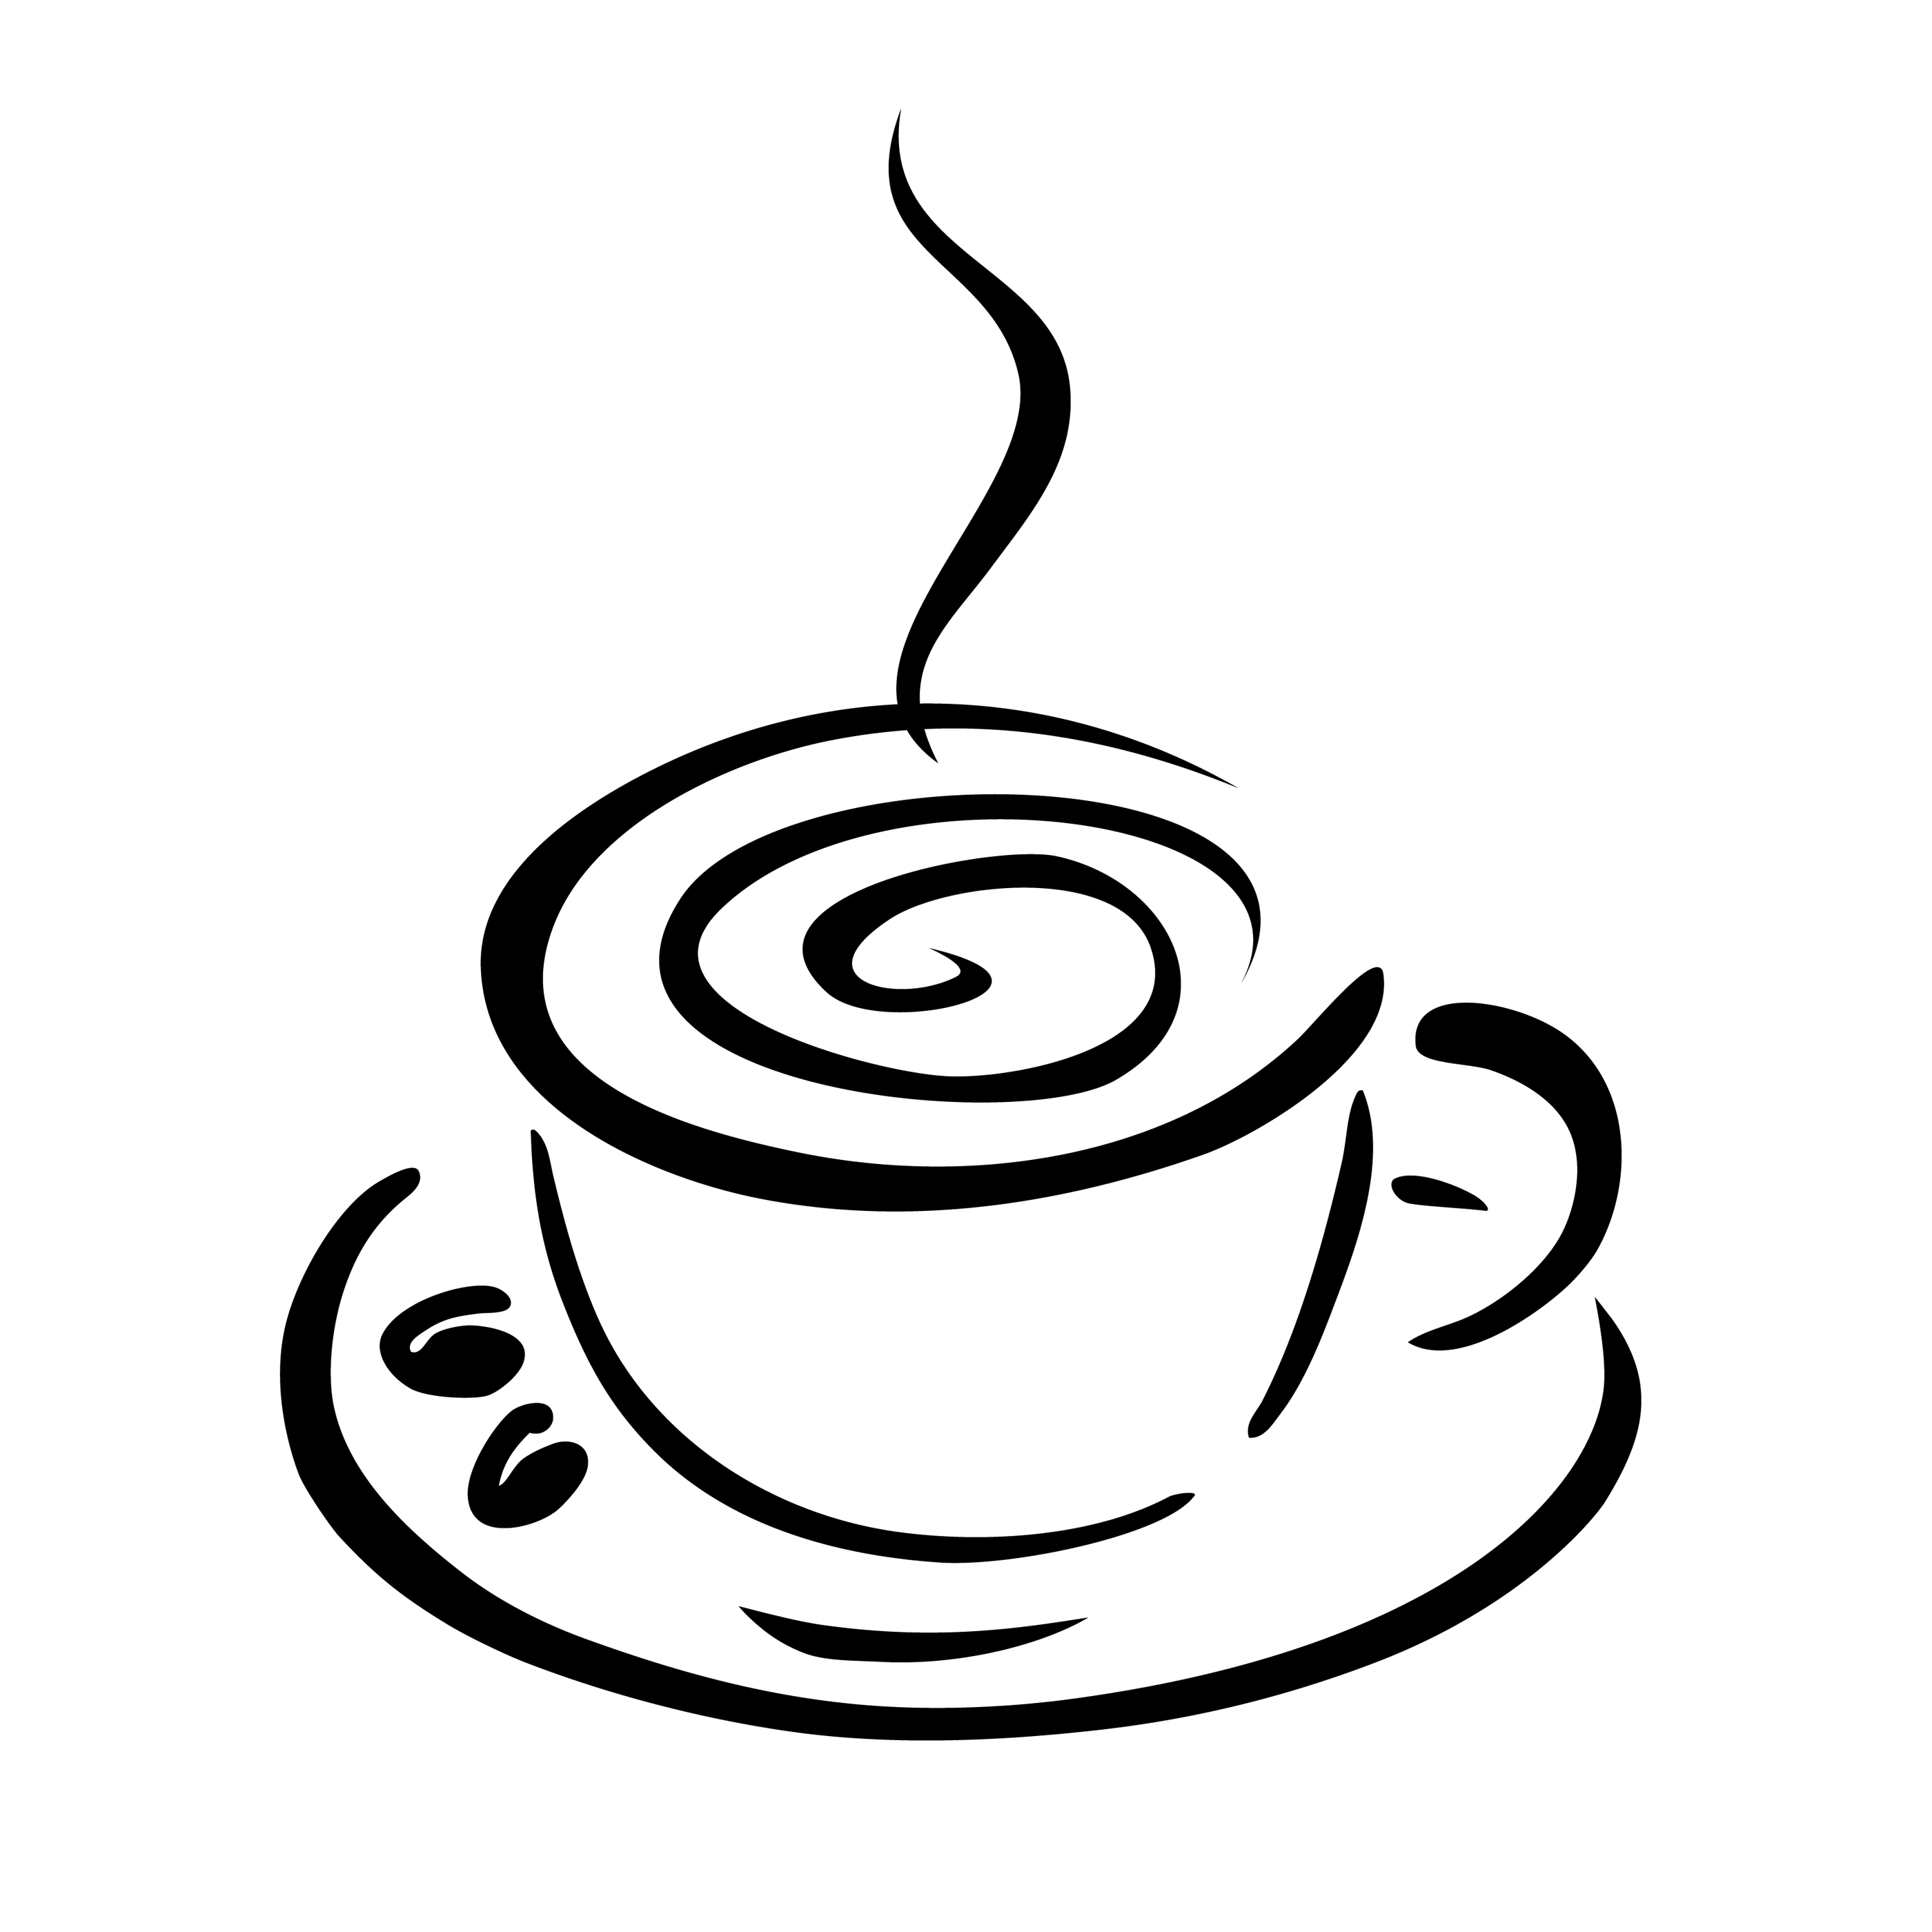 Coffee Cup Clip Art Black White   Clipart Panda   Free Clipart Images